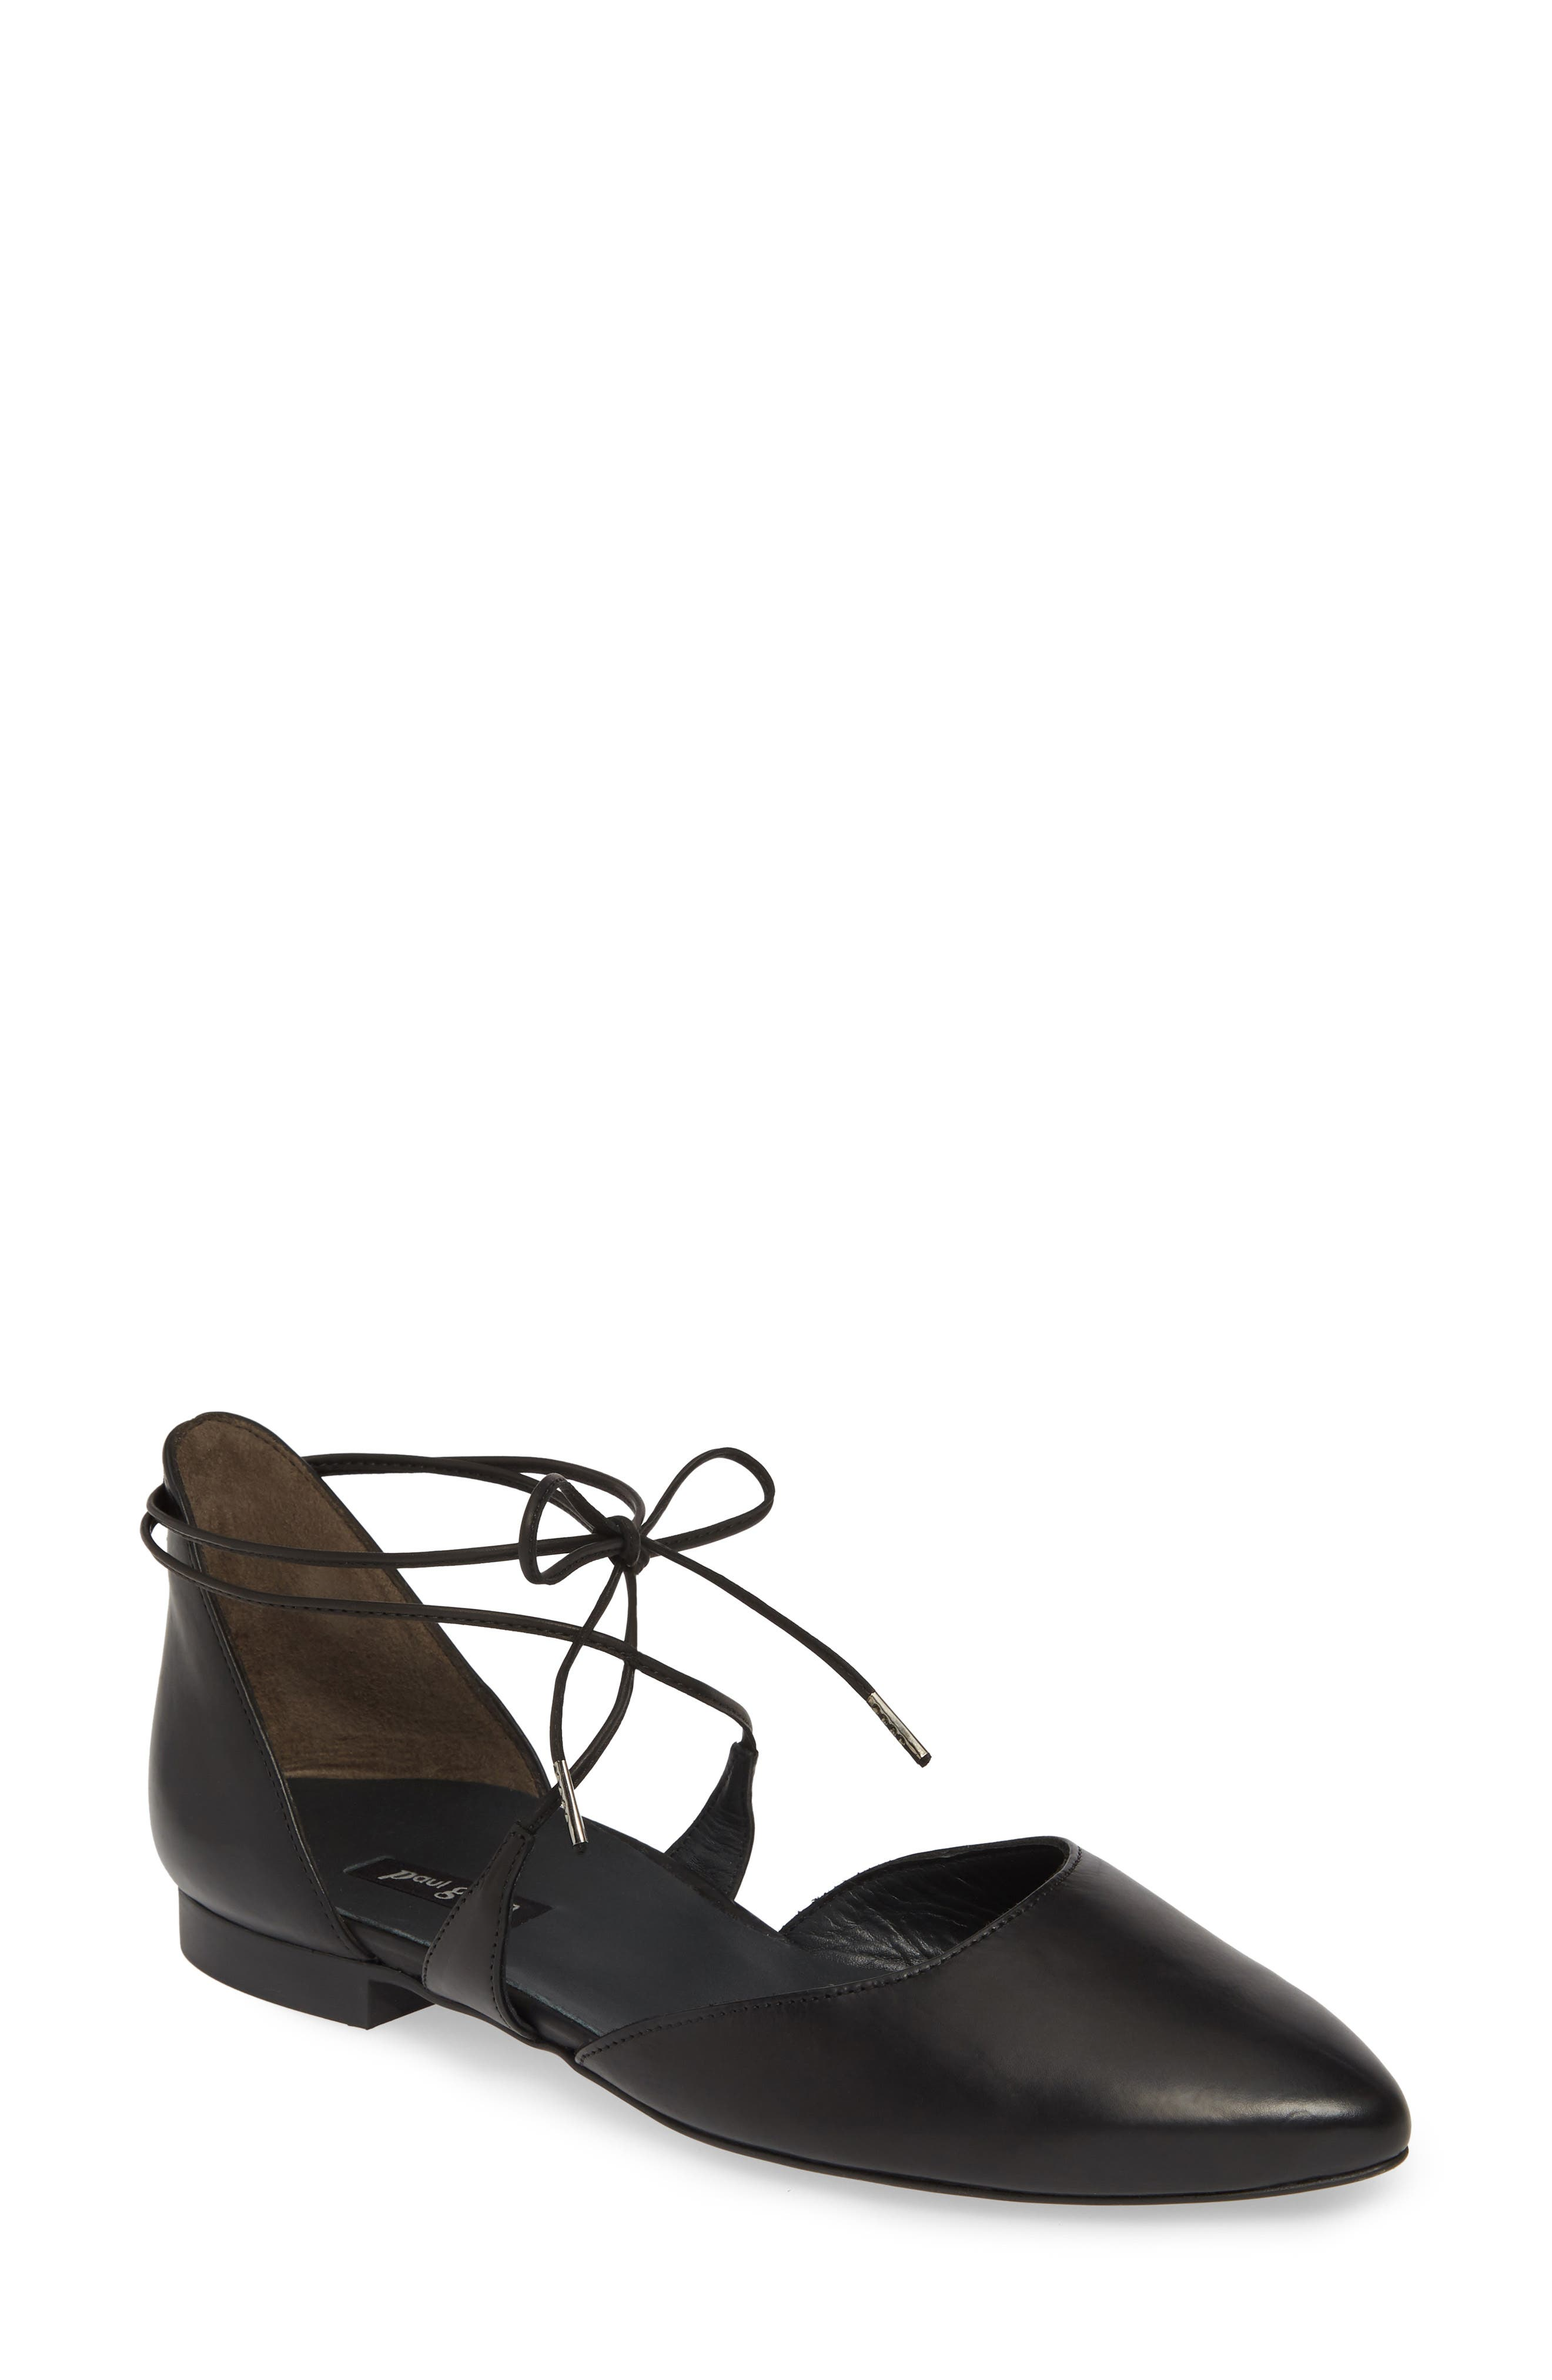 PAUL GREEN Lace Up Flat, Main, color, BLACK LEATHER